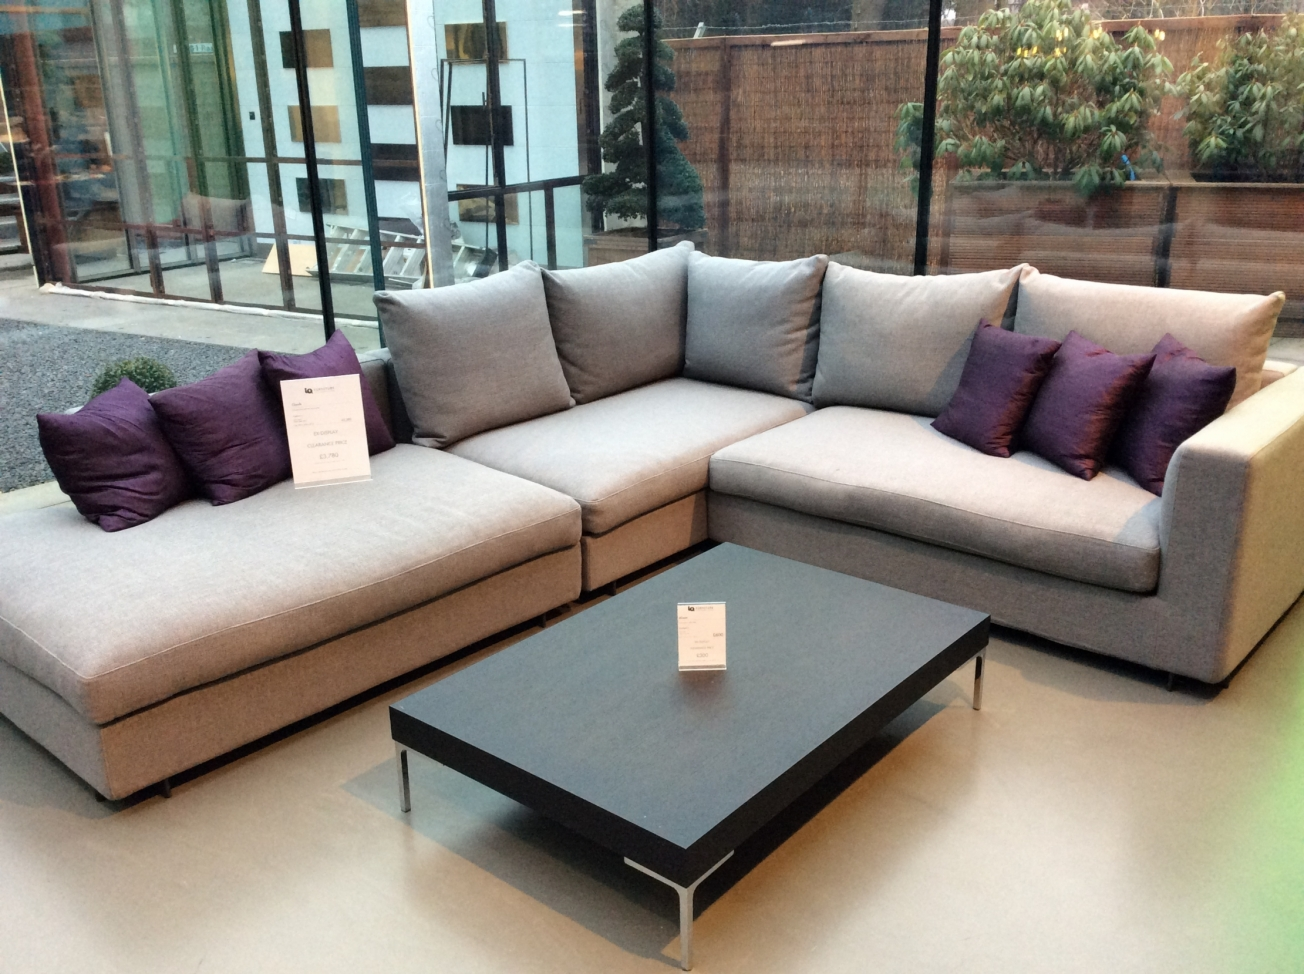 discontinued sofas uk rent a sofa for wedding clouds corner sold clearance iq furniture